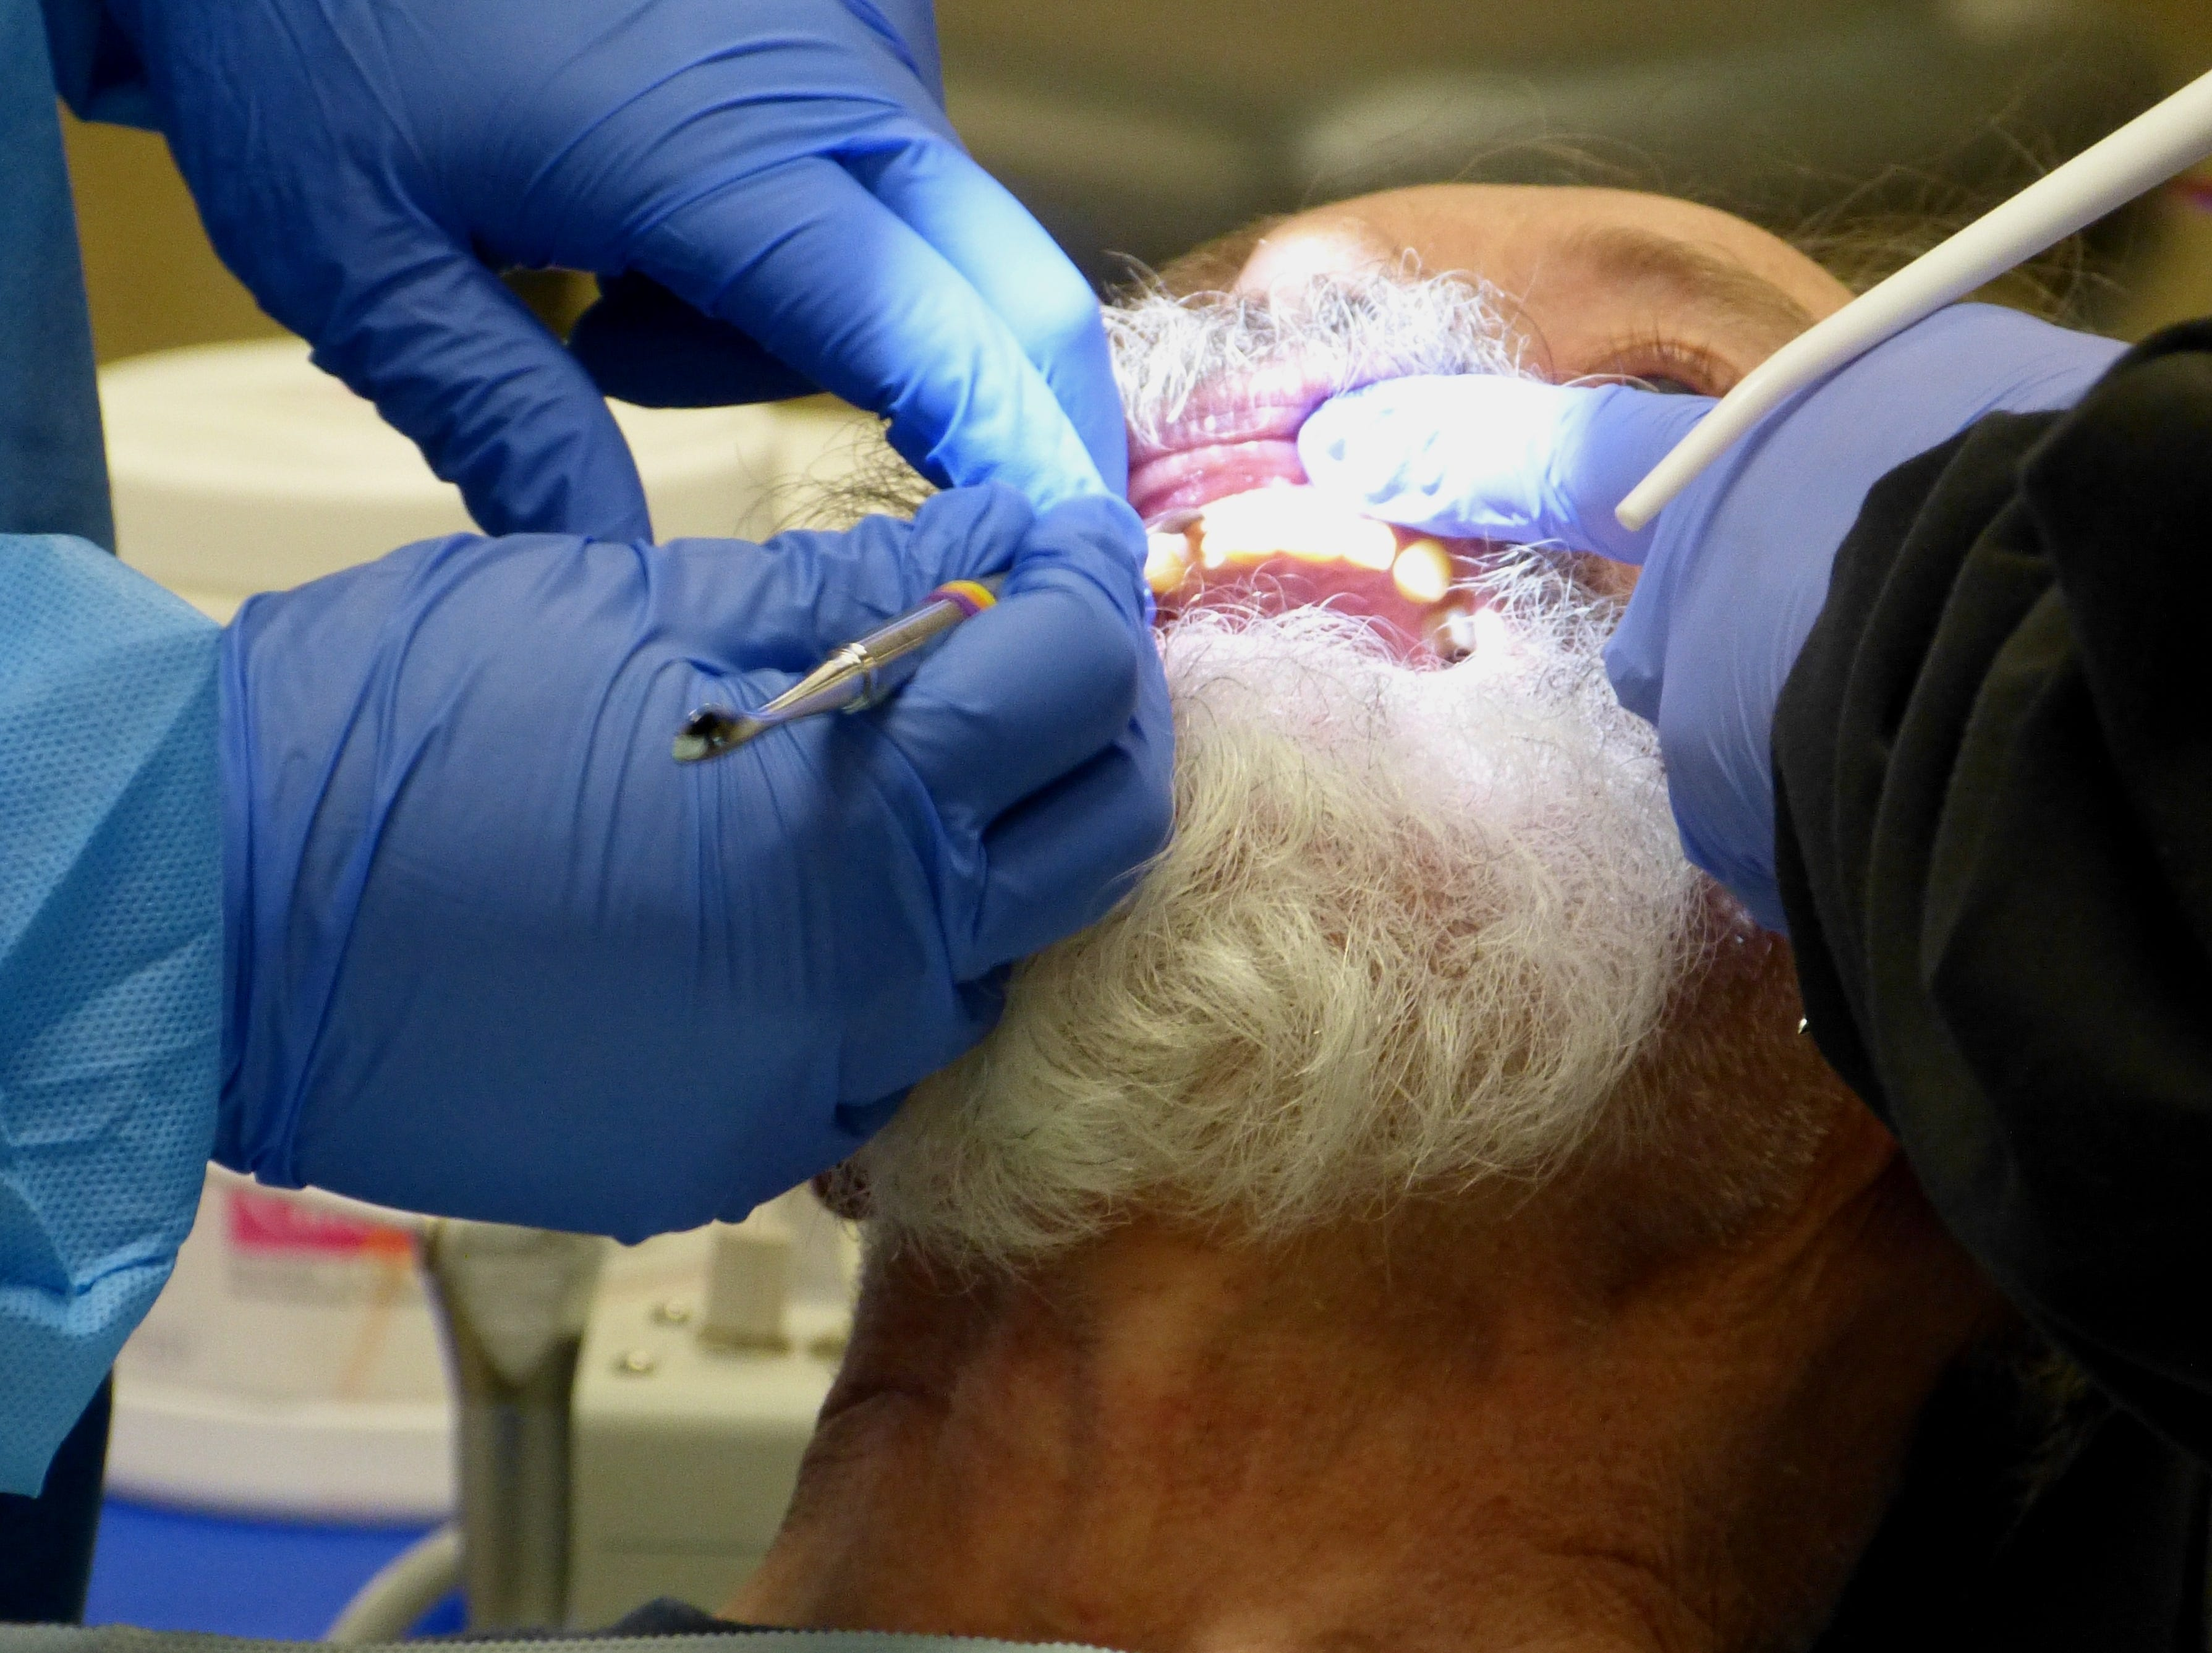 Cliff Emerson, a 69-year-old U.S. Marine Corps veteran, got a tooth pulled at the North Valley Stand Down.